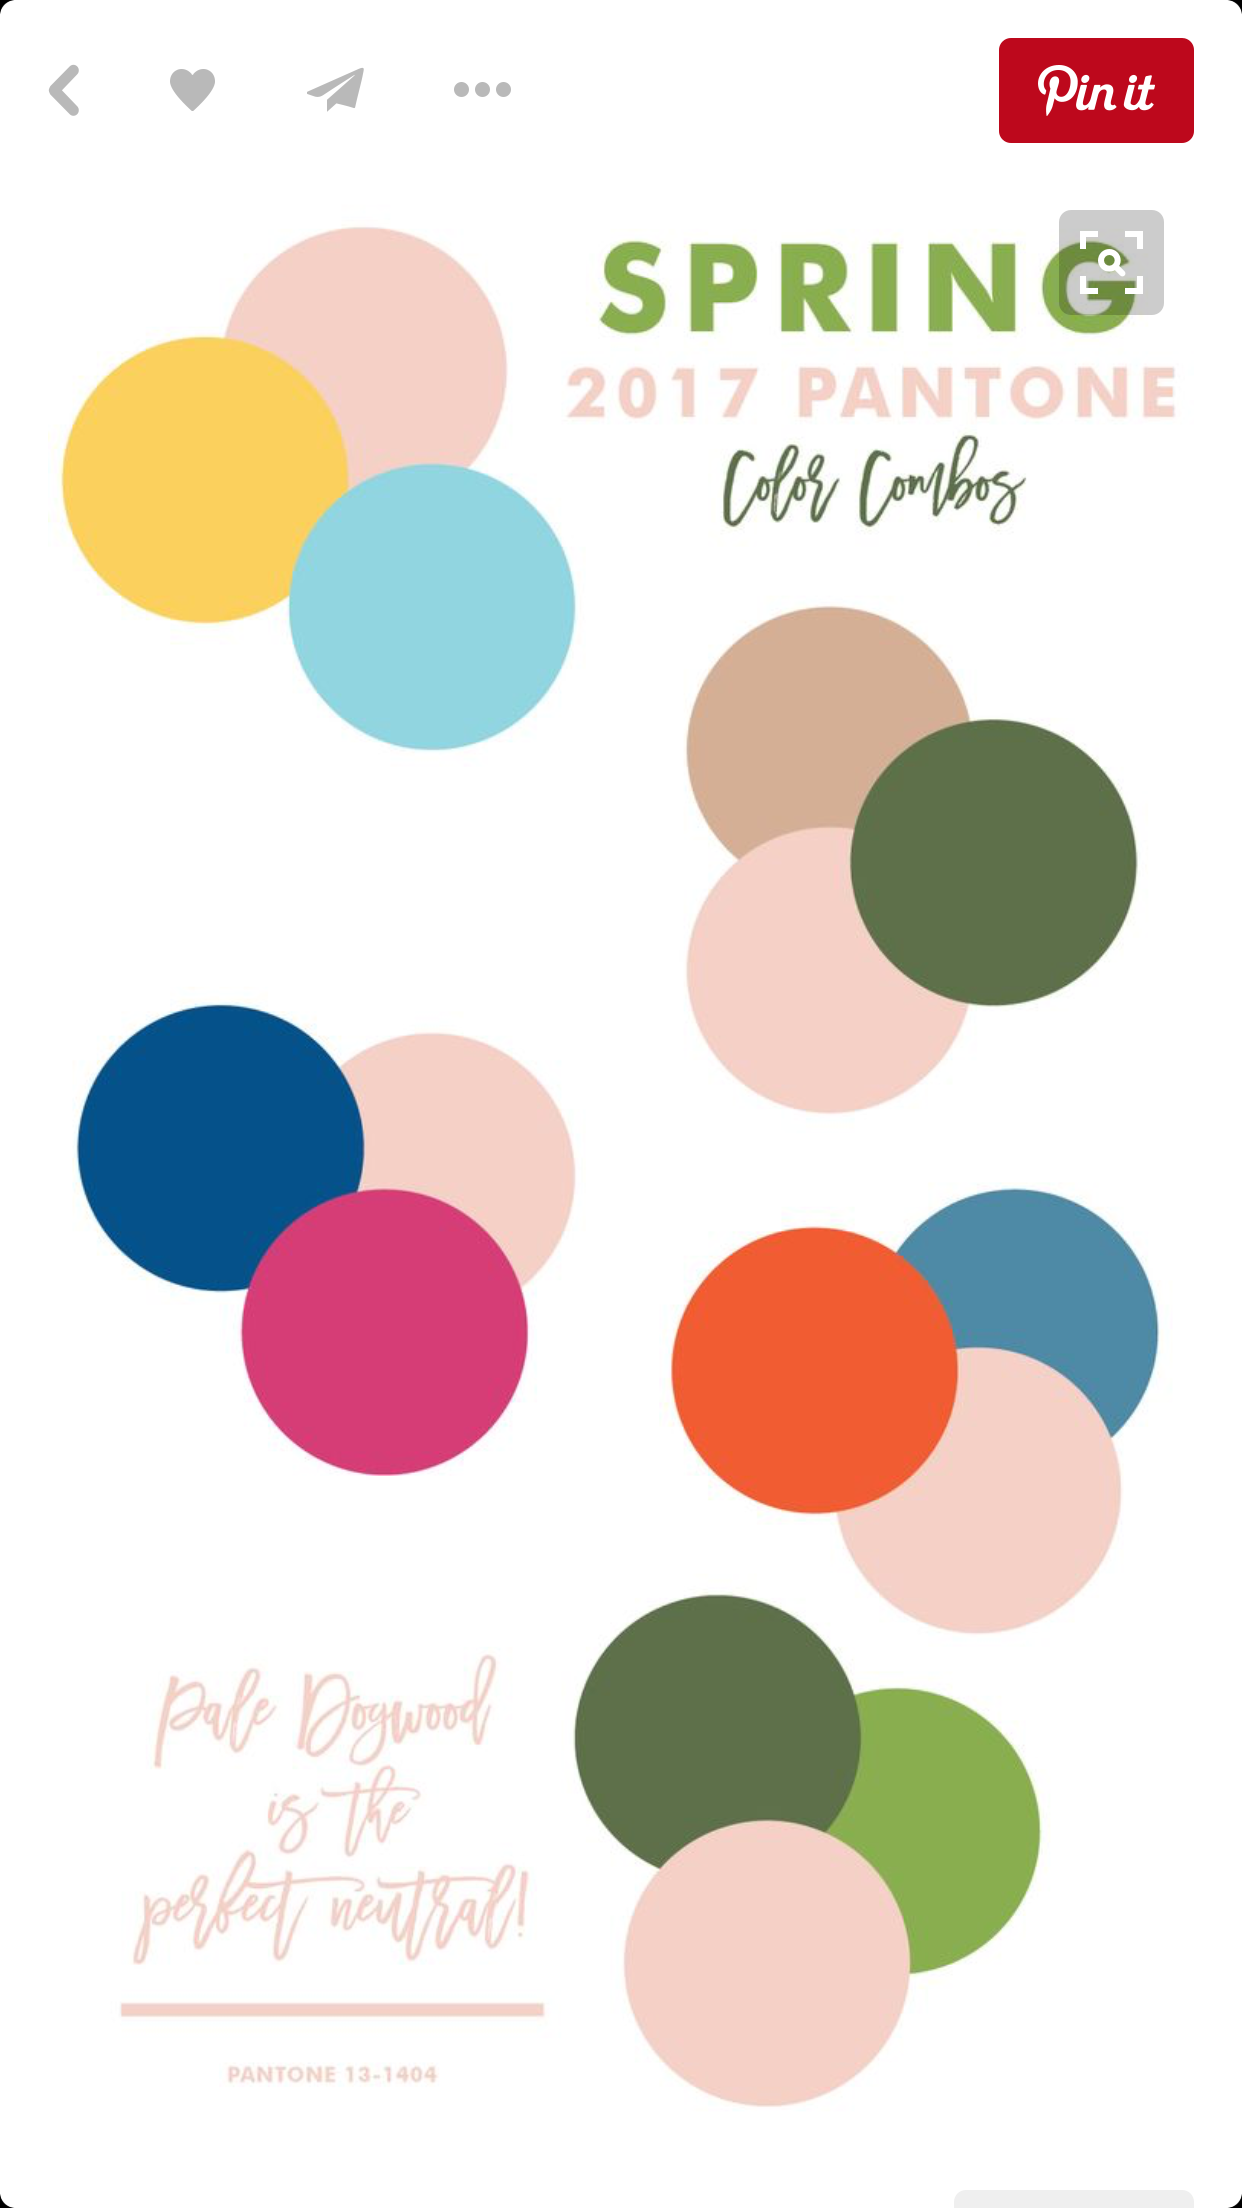 Pantone spring 2017 color trends report erika firm color pantone spring 2017 color trends report erika firm color palettes pinterest pantone spring and color inspiration nvjuhfo Image collections